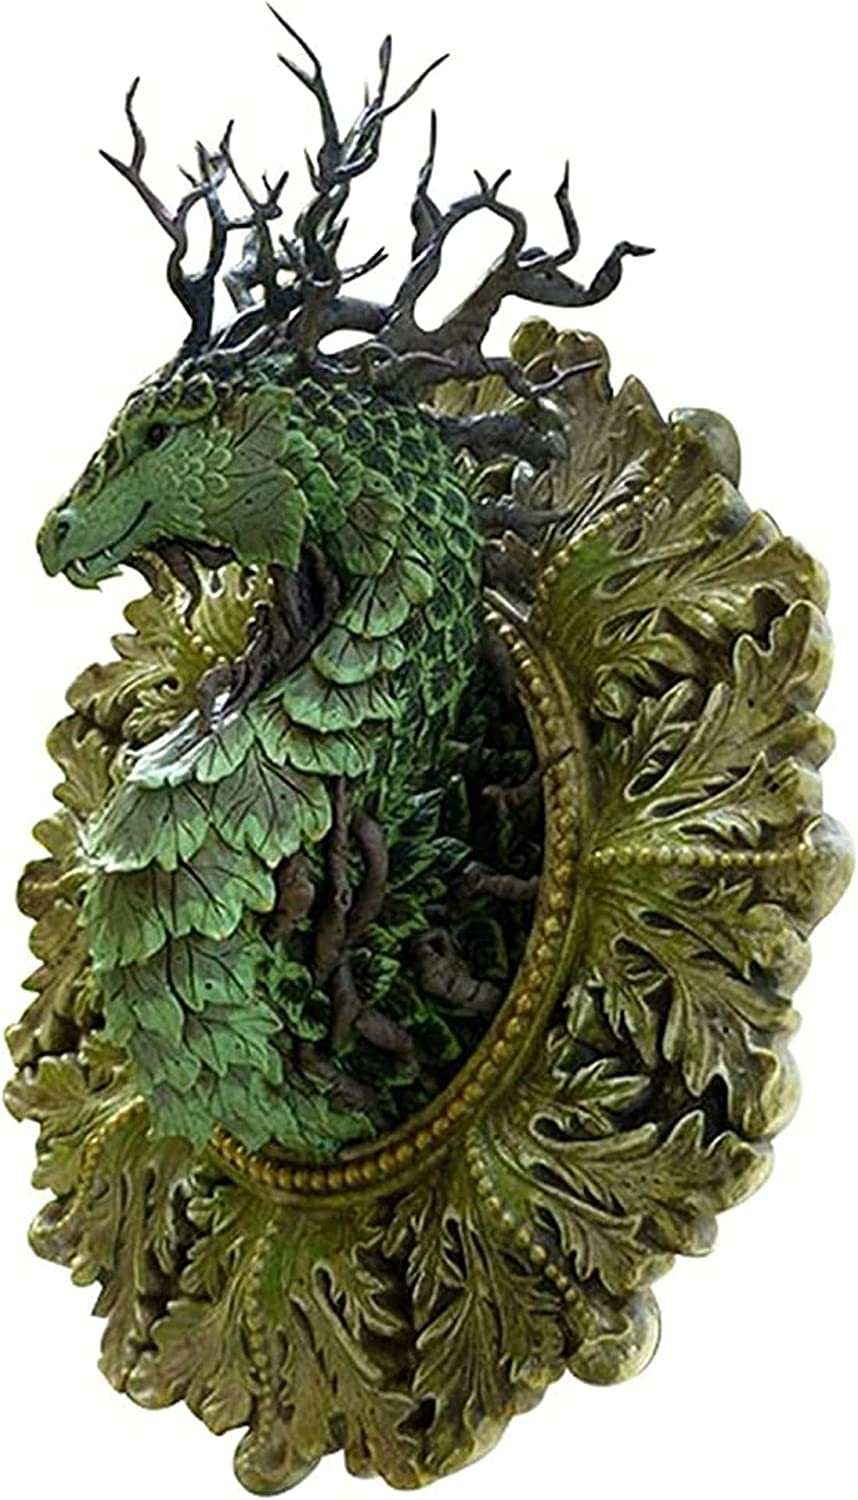 Outlet ☆ Free Shipping Figurine Statue Austin Mall Forest Dragon Figurines Wa Resin Statues